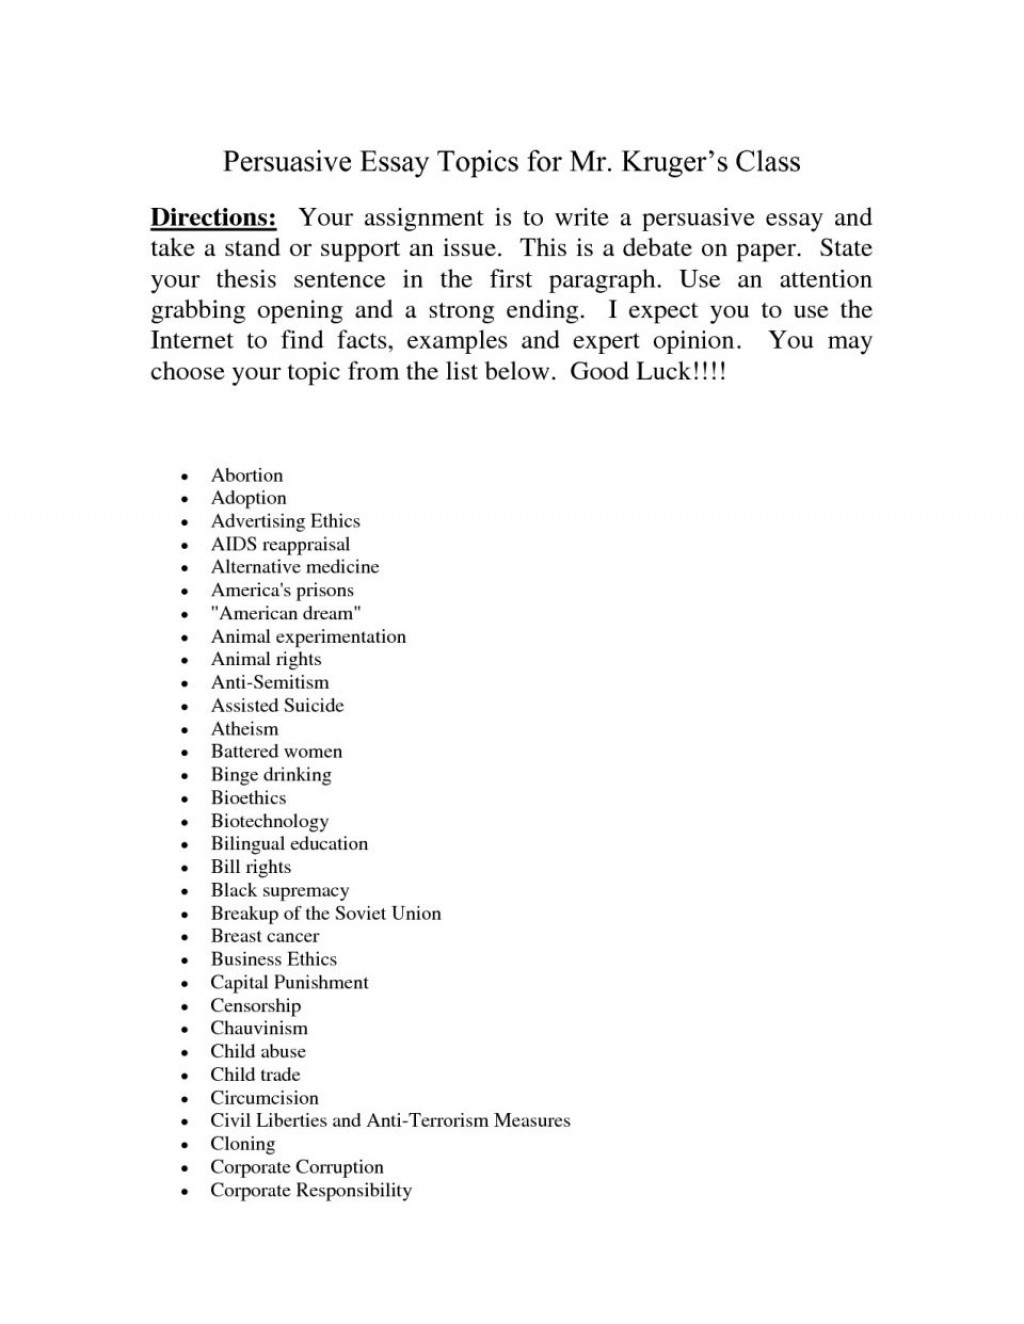 022 Interesting Topic For Research Paper Essay Barca Fontanacountryinn Within Good Persuasive Narrative Topics To Write Abo Easy About Personal Descriptive Informative Synthesis Breathtaking Hot Medical Papers In Education The Philippines Sample Large